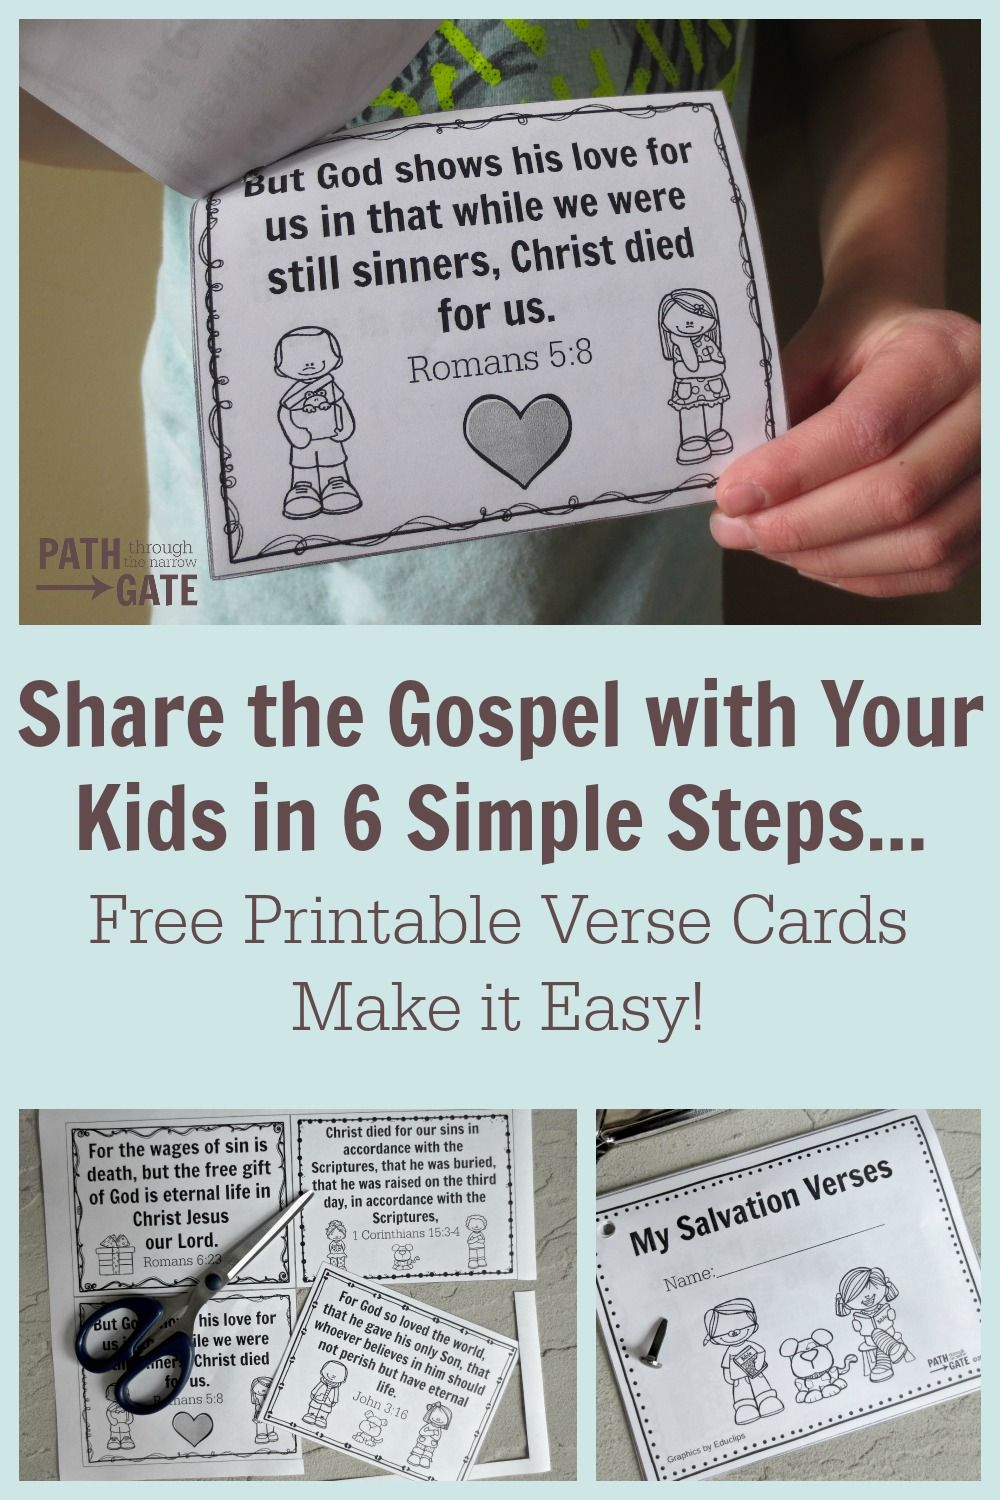 These free printable verse cards are a perfect way to share the